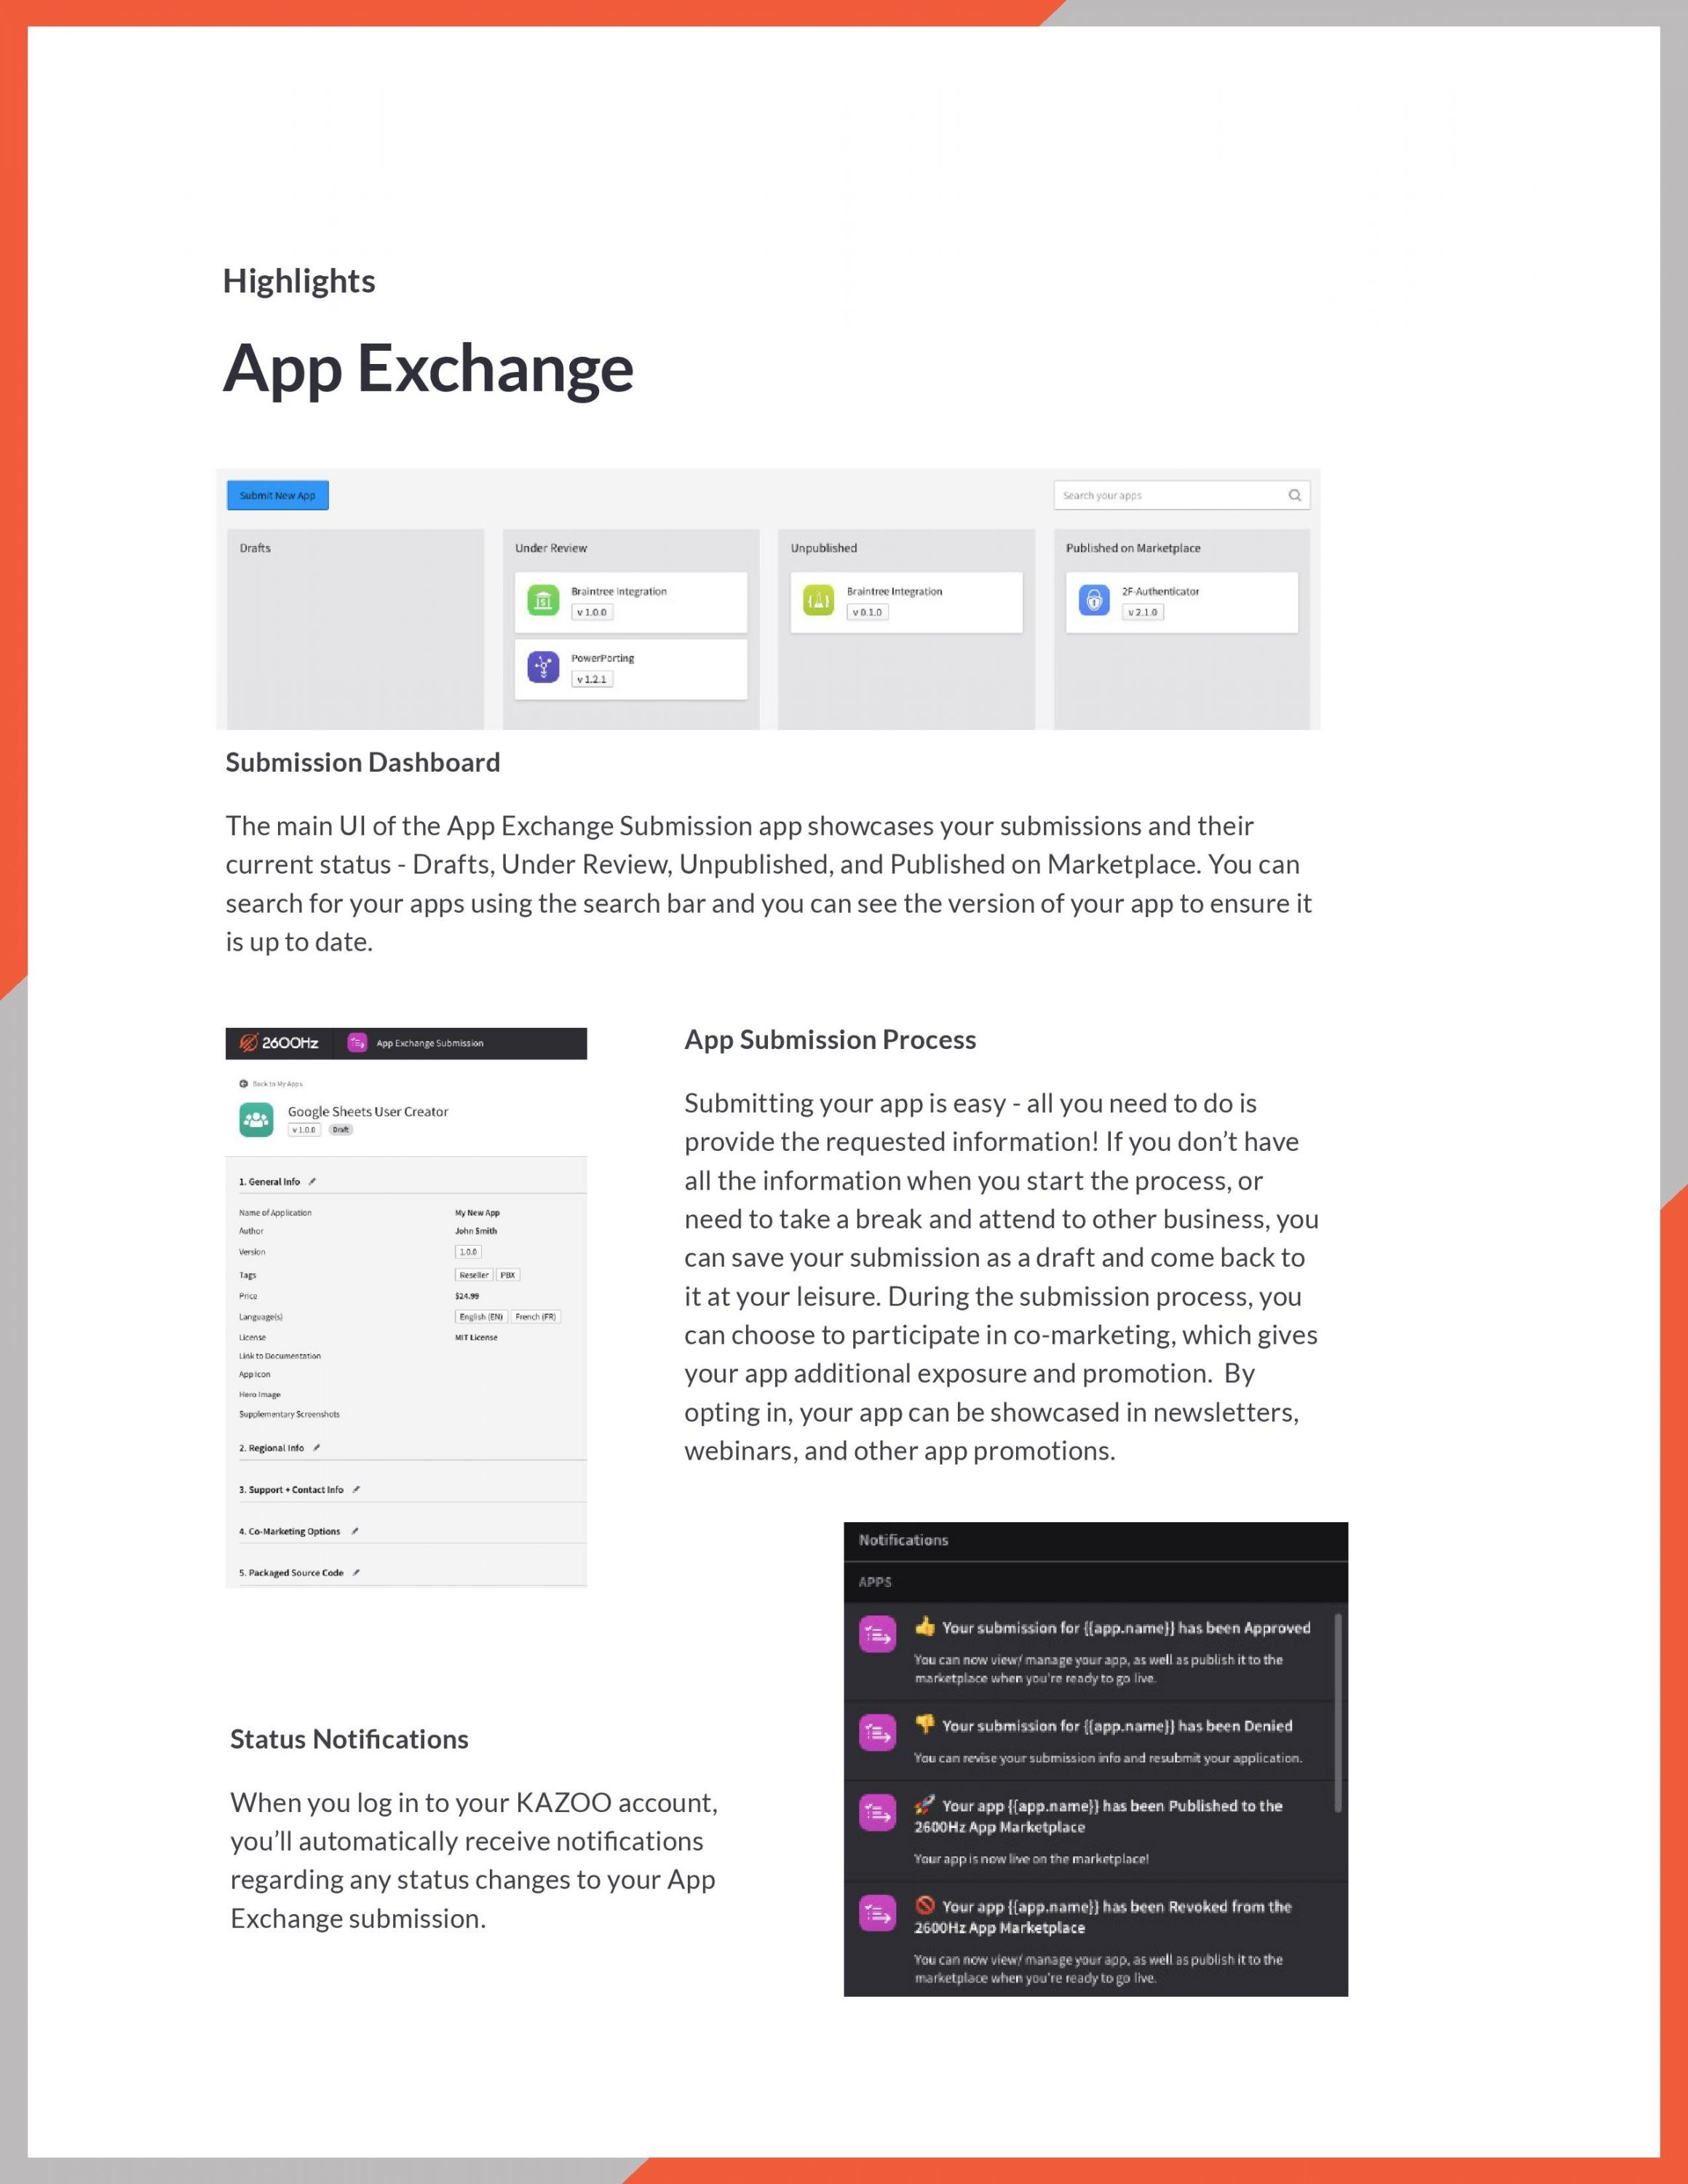 2600Hz-App-Exchange-Overview_17Dec19-page-003.jpg